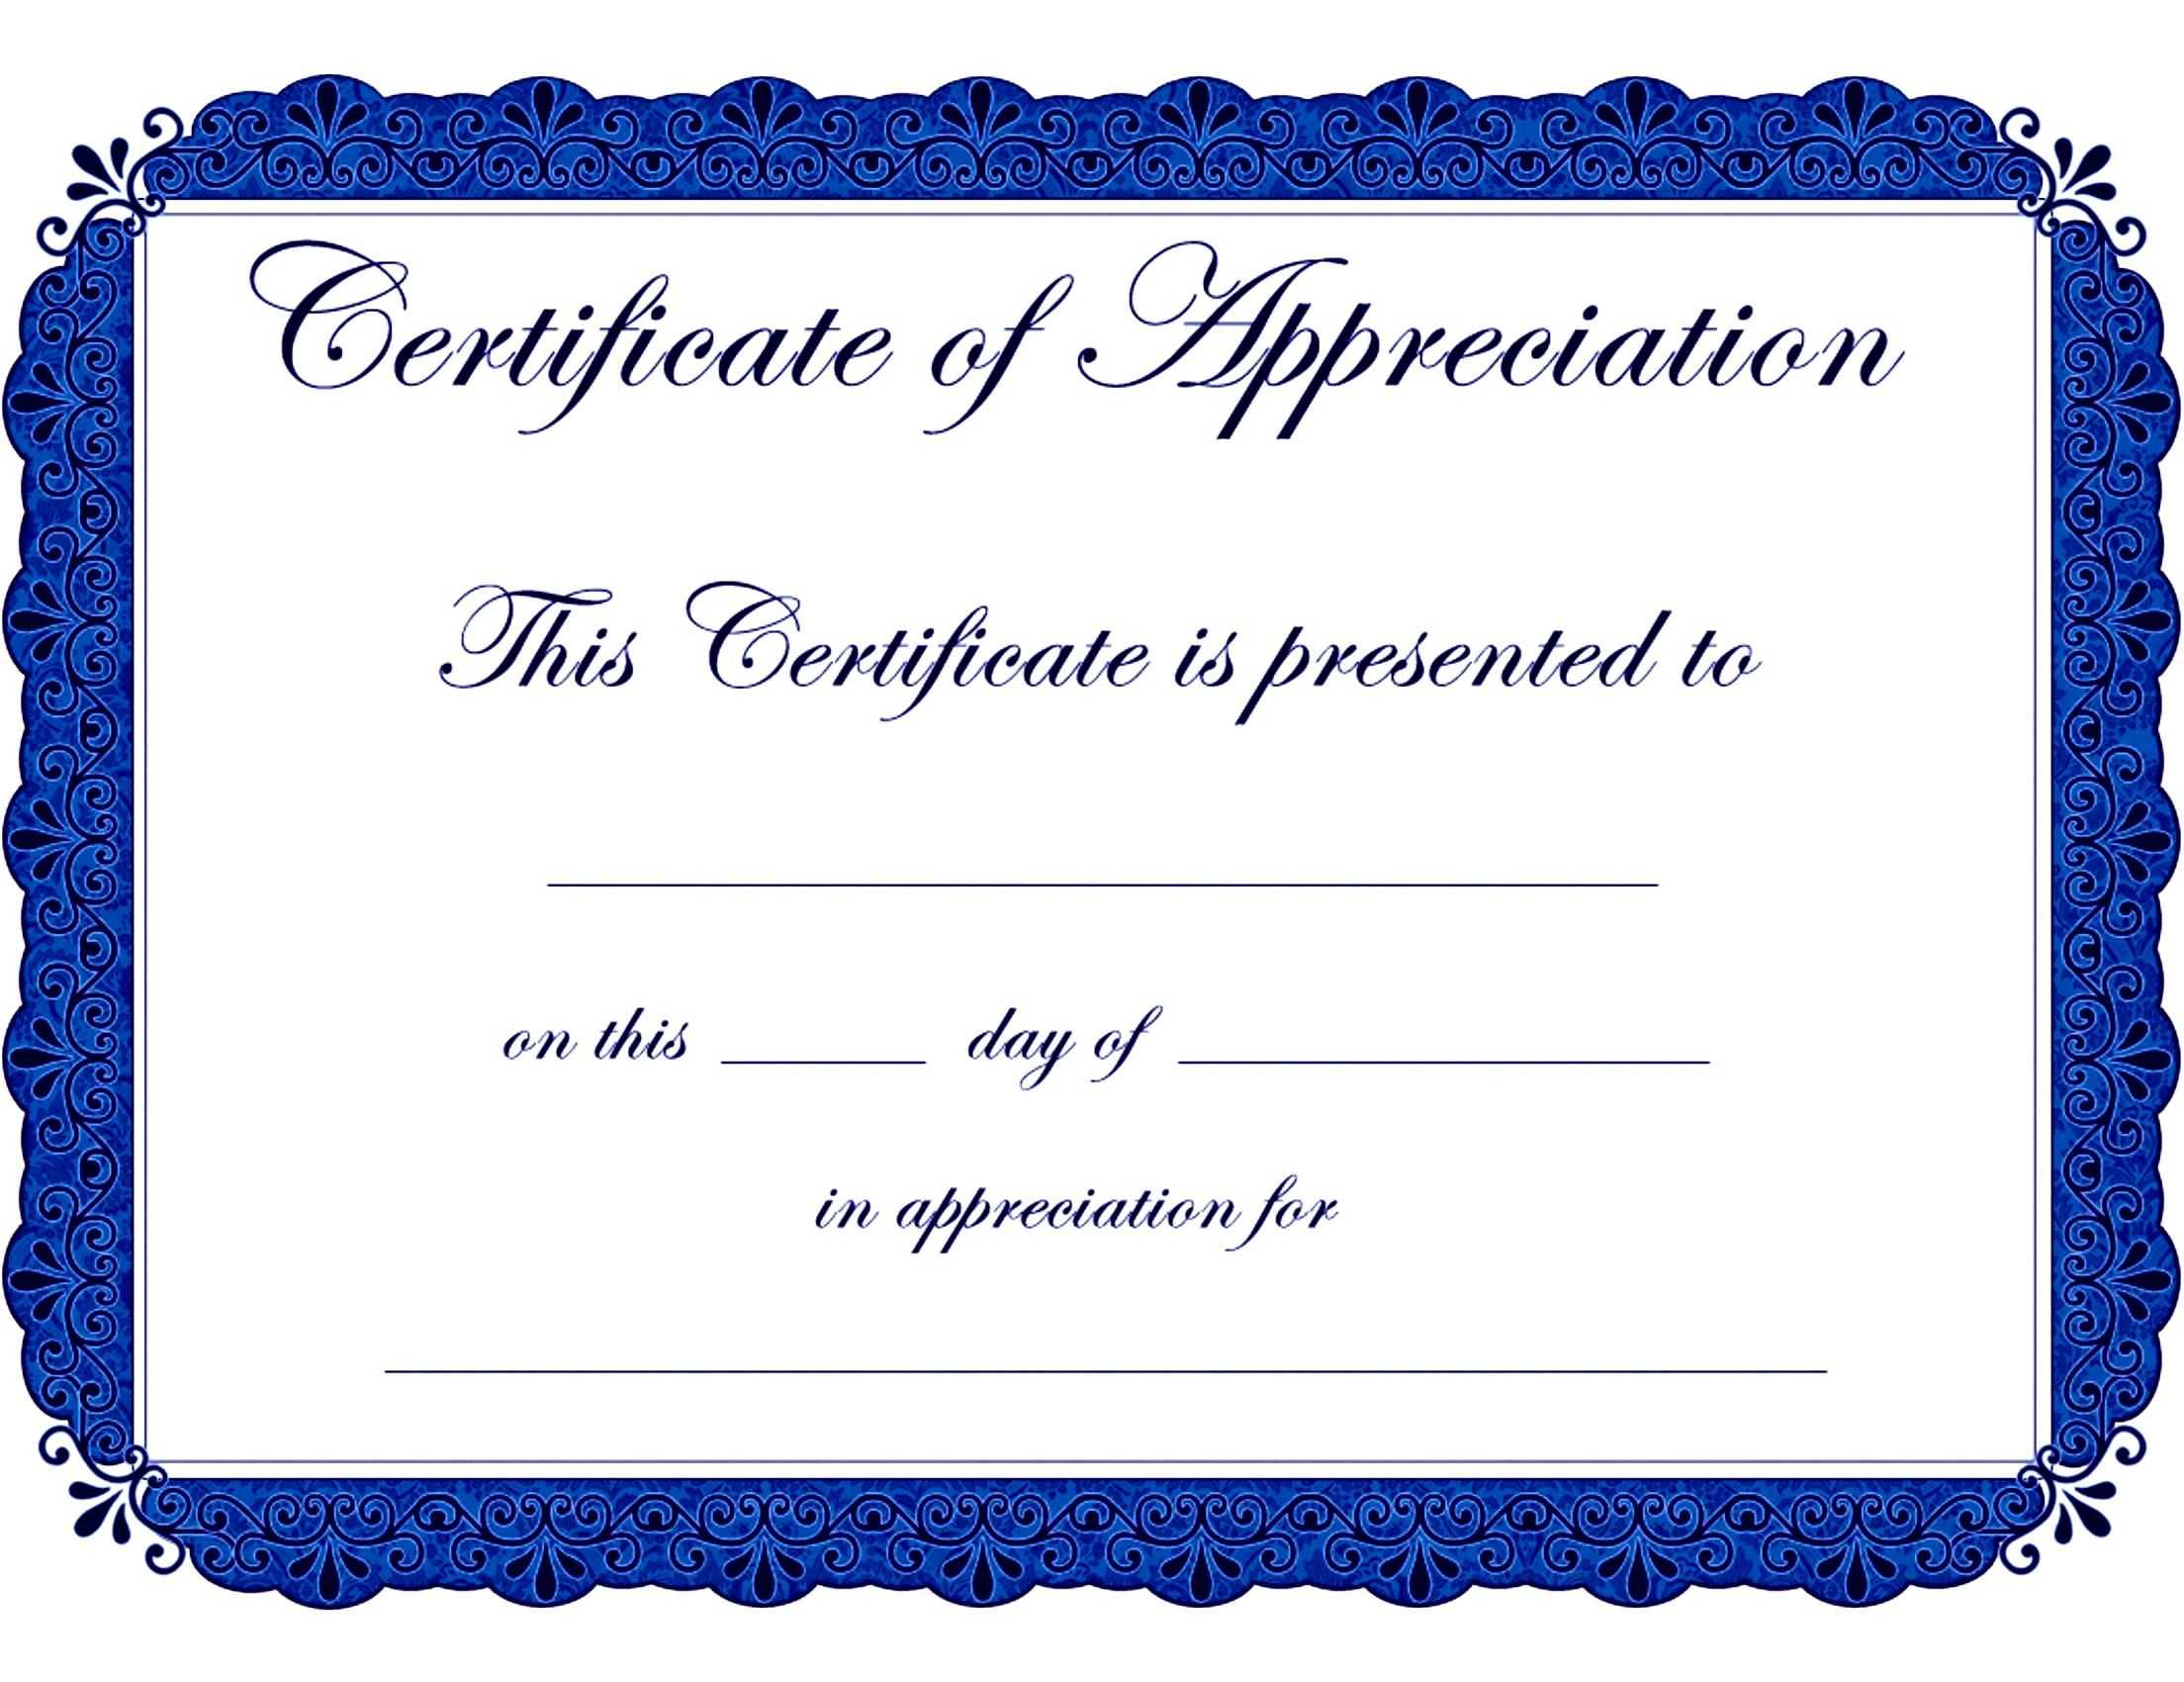 Award Template Word Ceremony Invitation Free Scholarship in Sports Award Certificate Template Word